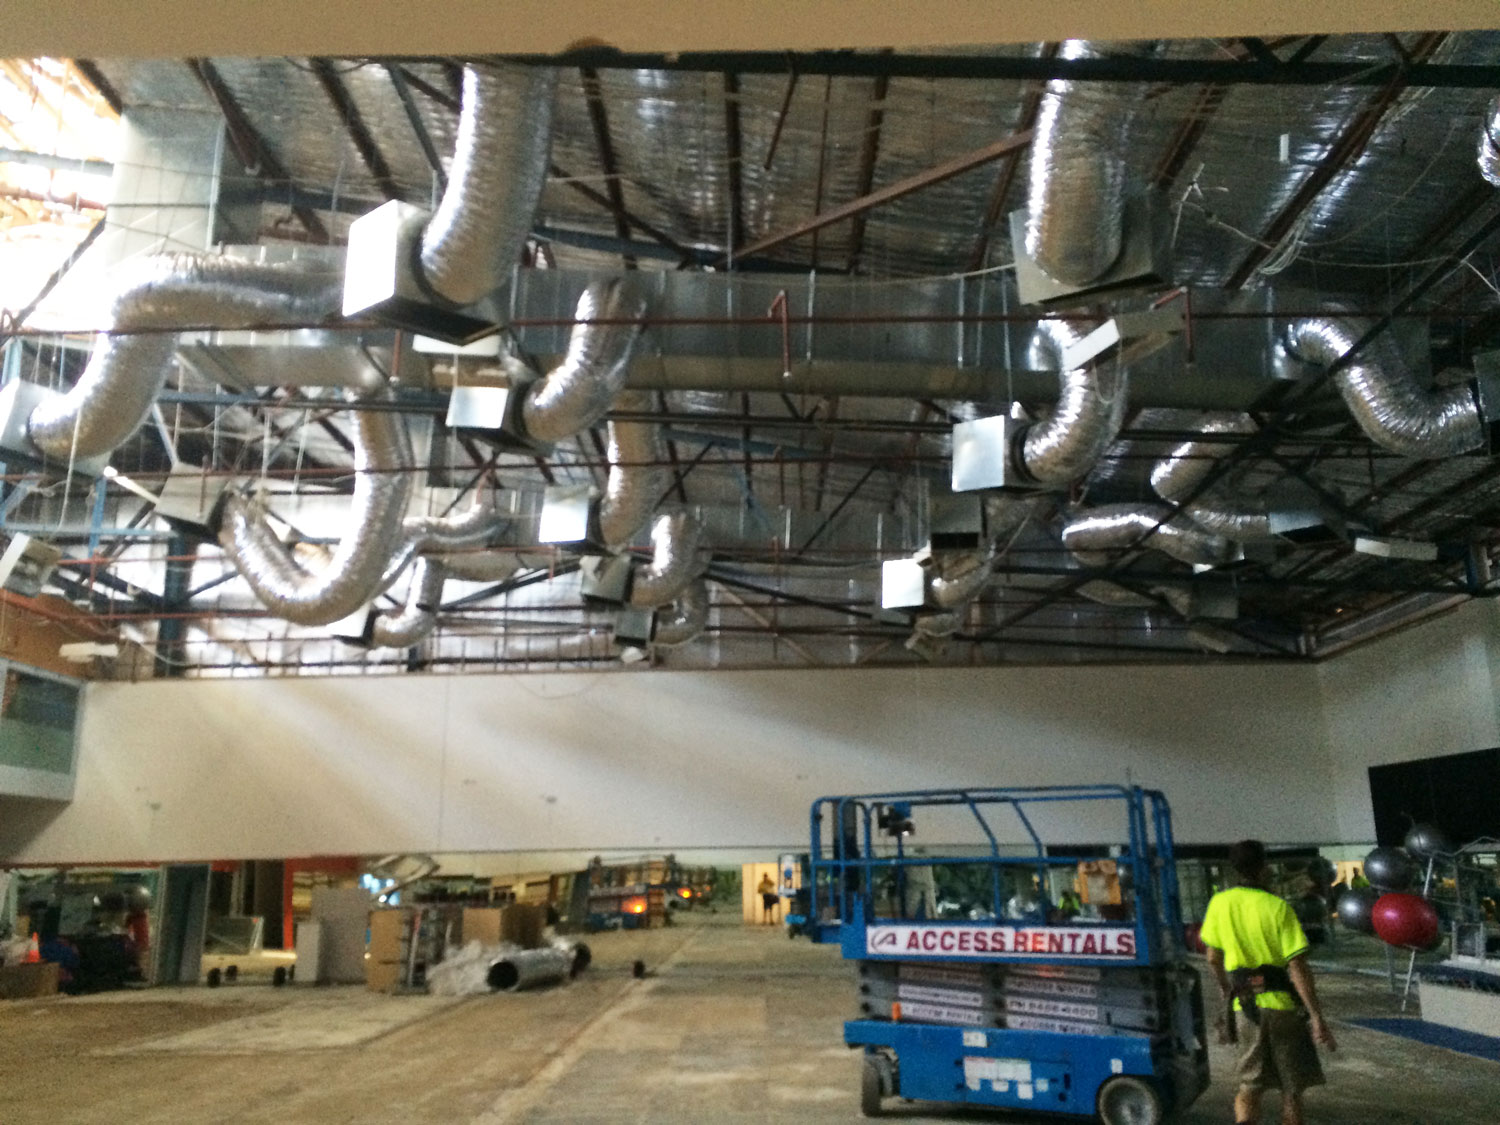 huge shed with industrial air conditioning set up in the roof